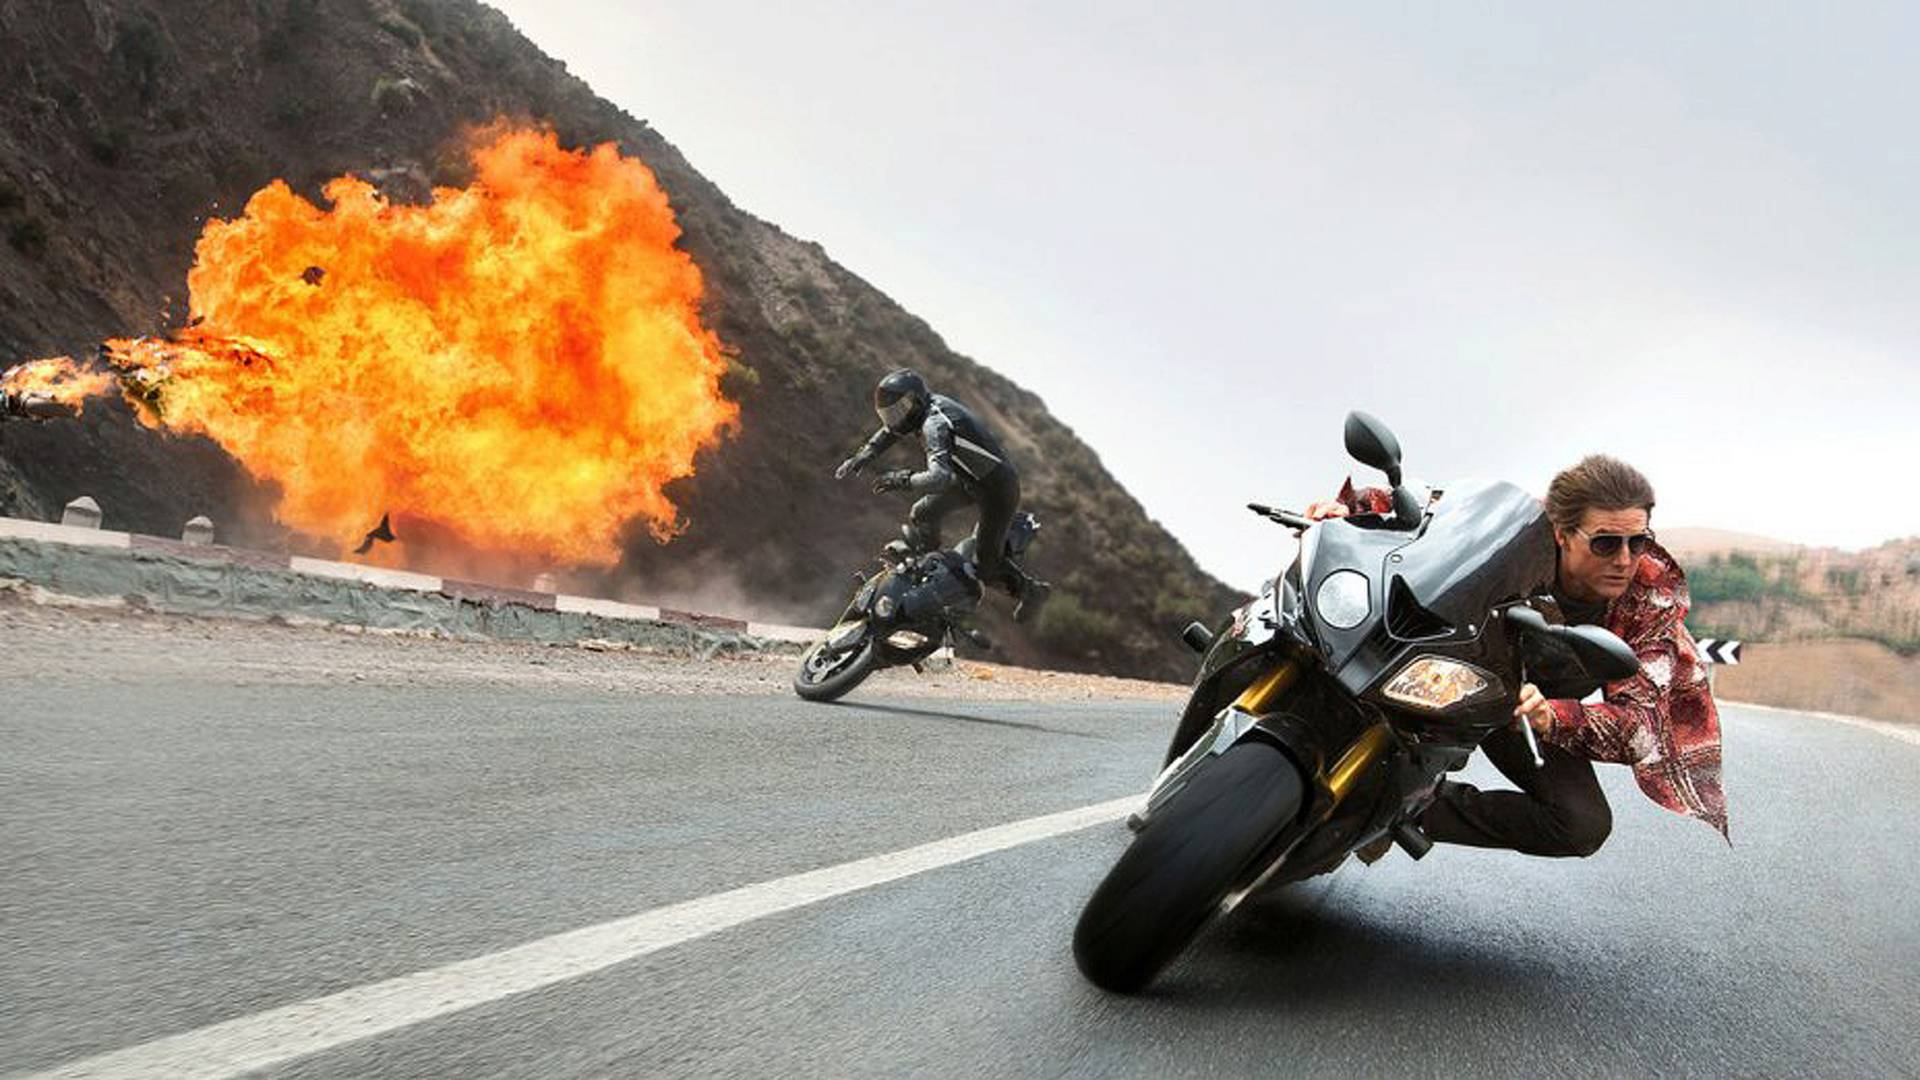 The Awesome Mission Impossible Bikes